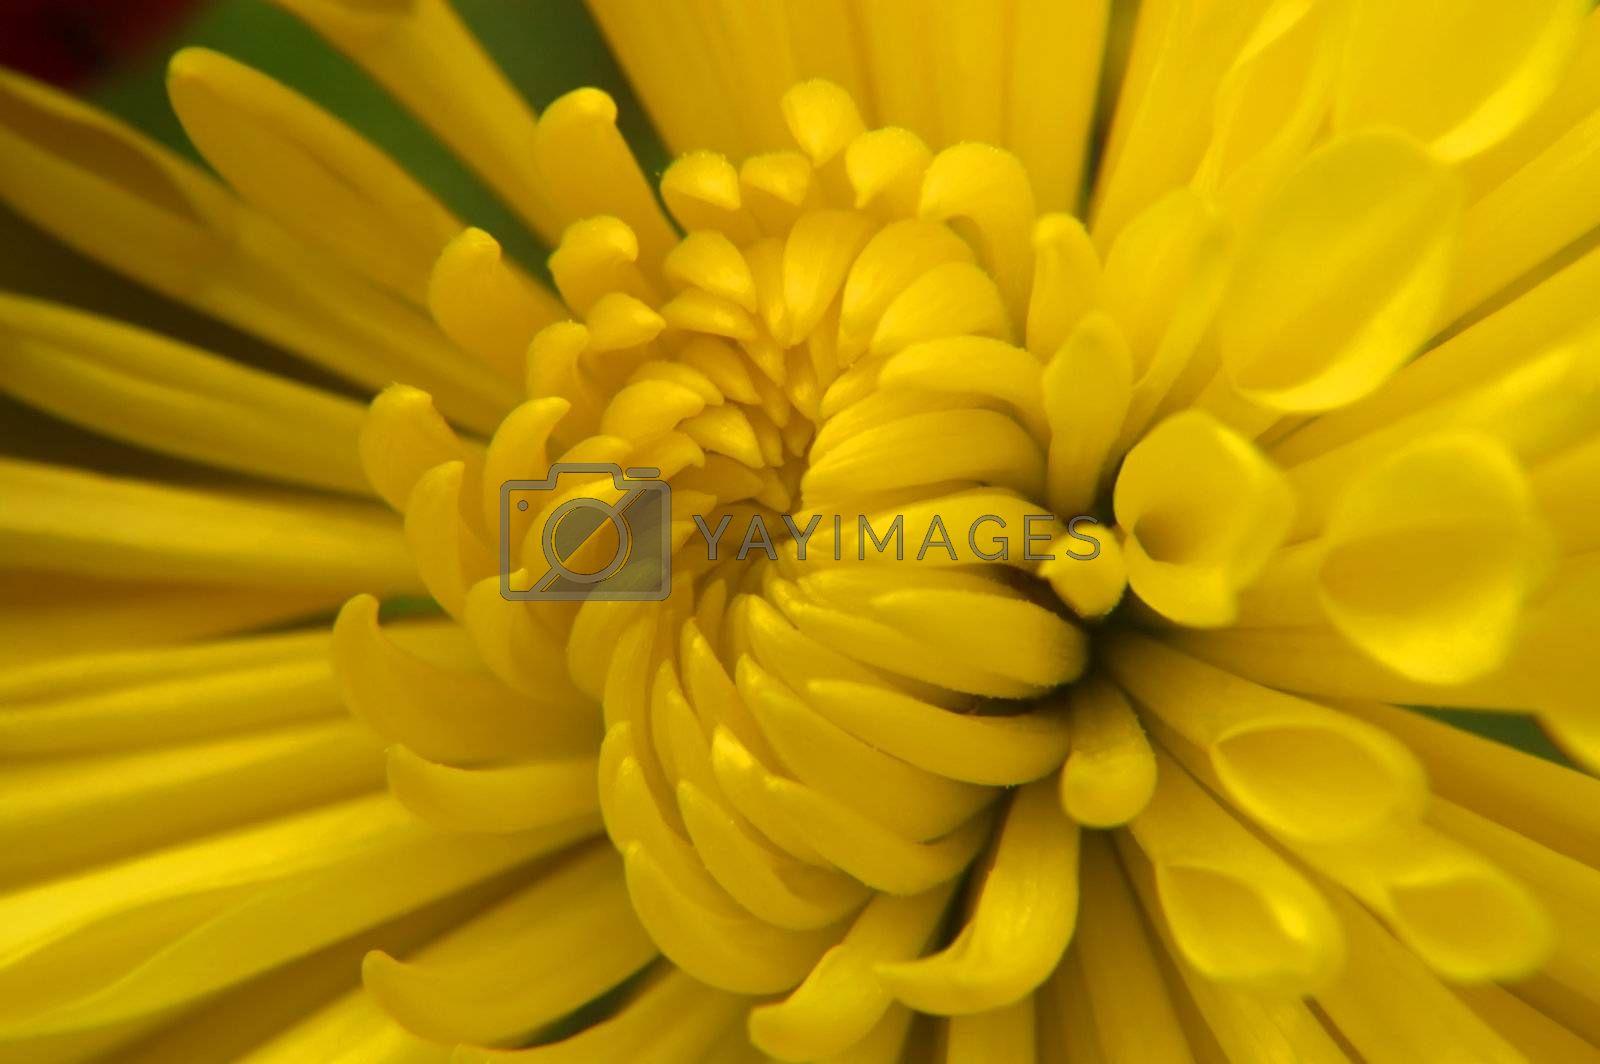 A very close macro of the center of a Chrysanthemum! The petals are beautiful as they curl in their slow paced opening.